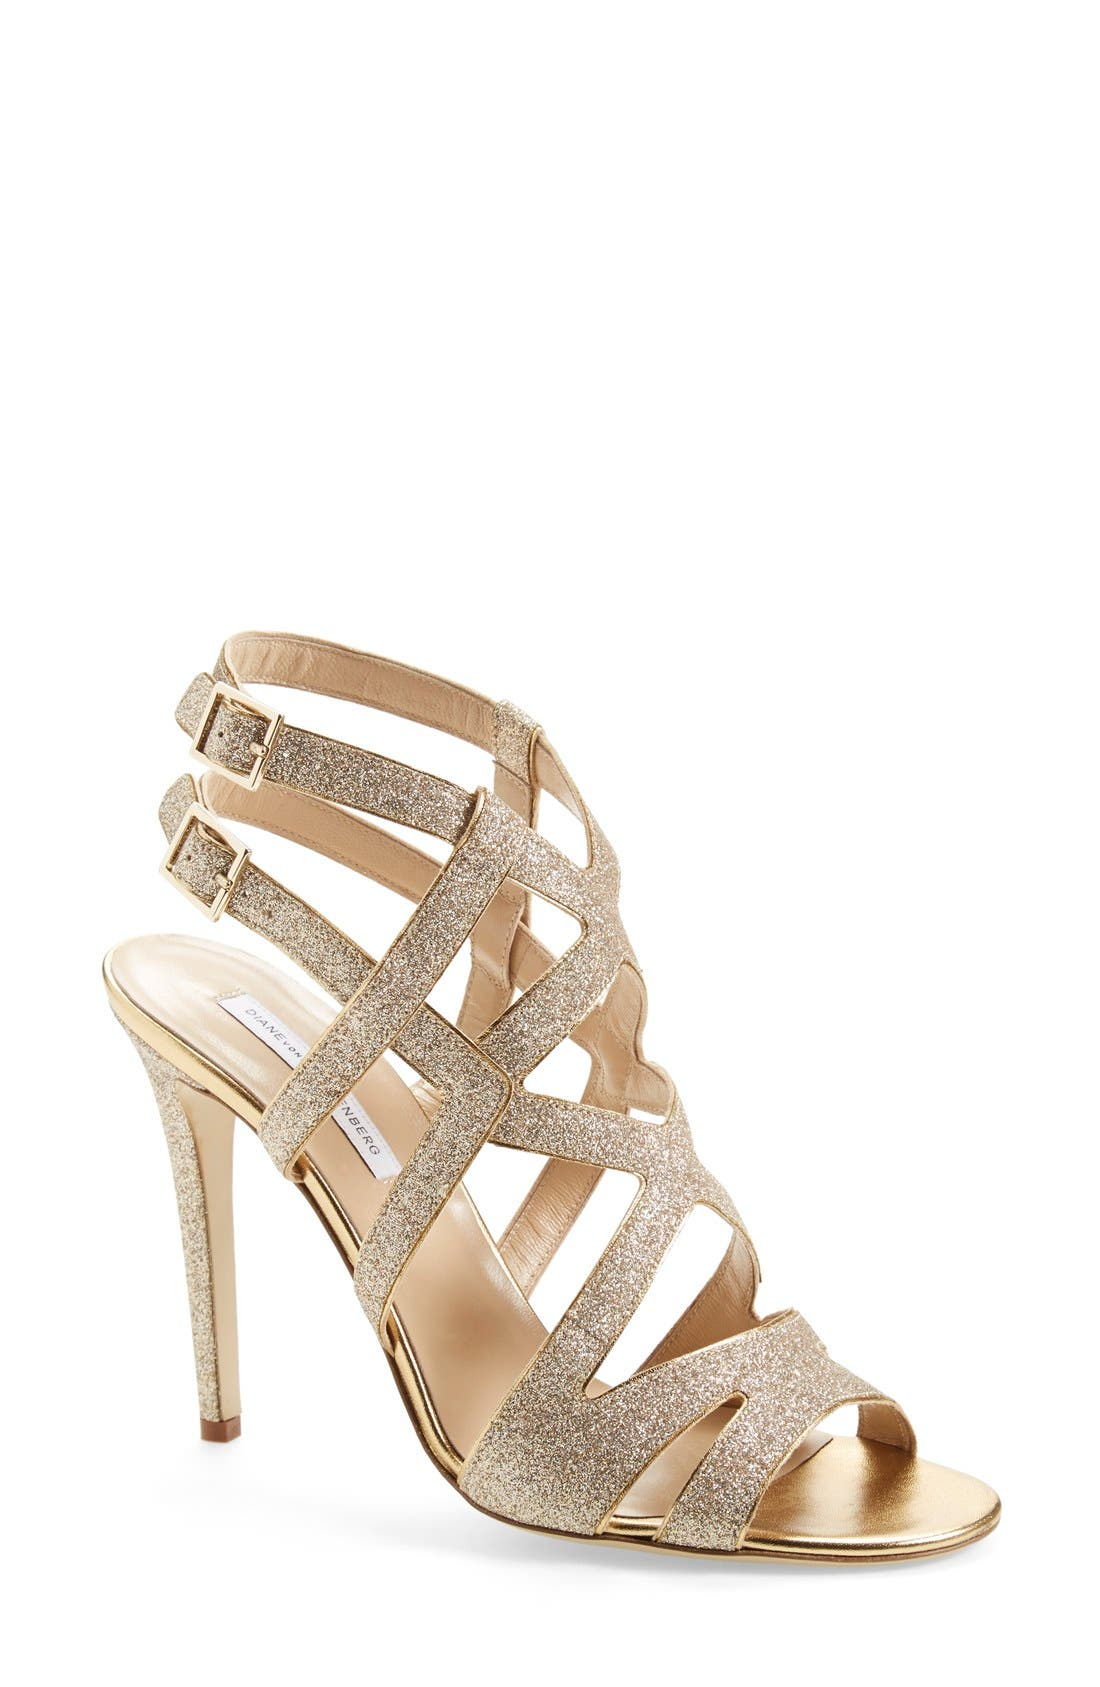 Alternate Image 1 Selected - Diane von Furstenberg 'Valene' Sandal (Women)